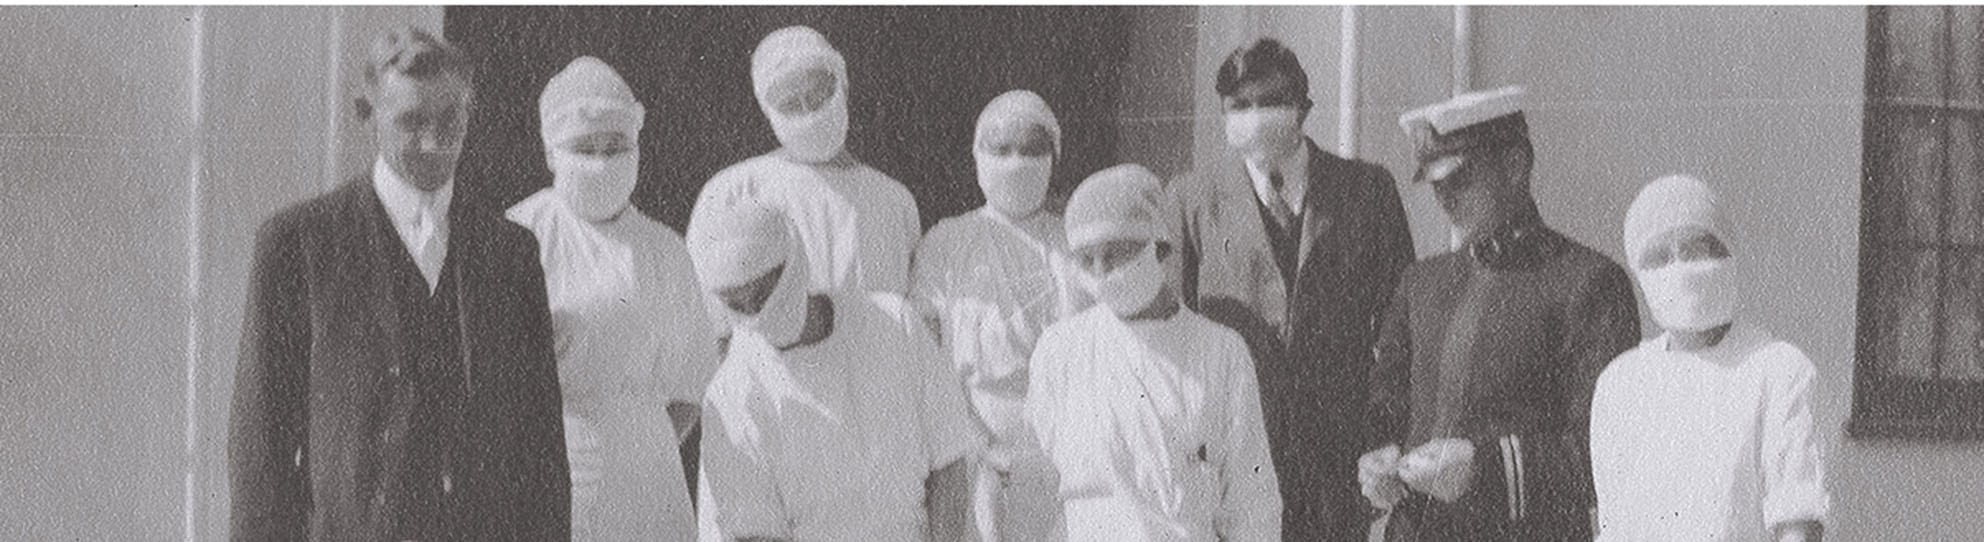 medical workers during pandemic